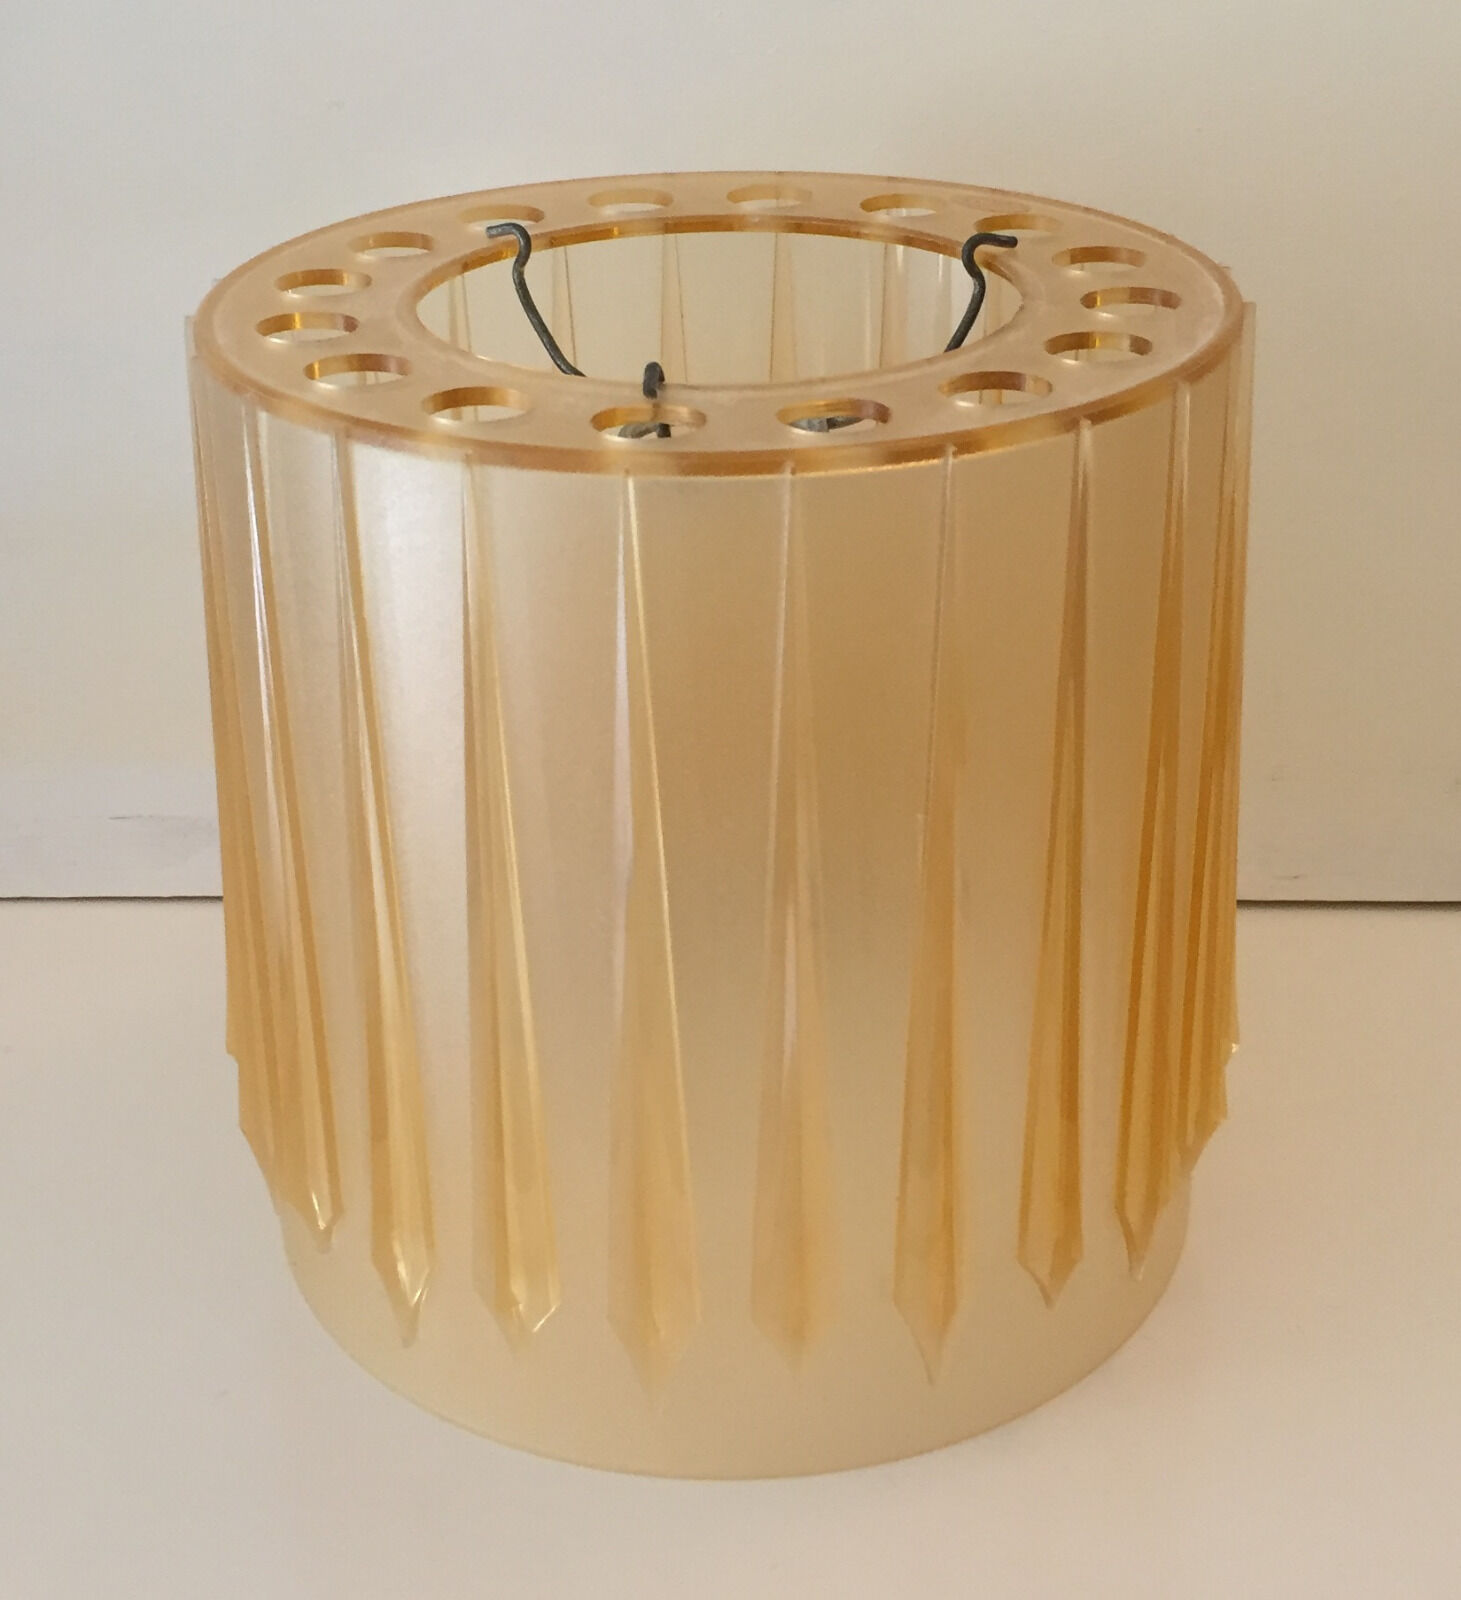 1960's vintage original lampshade, cylinder shape retro ceiling wall light shade